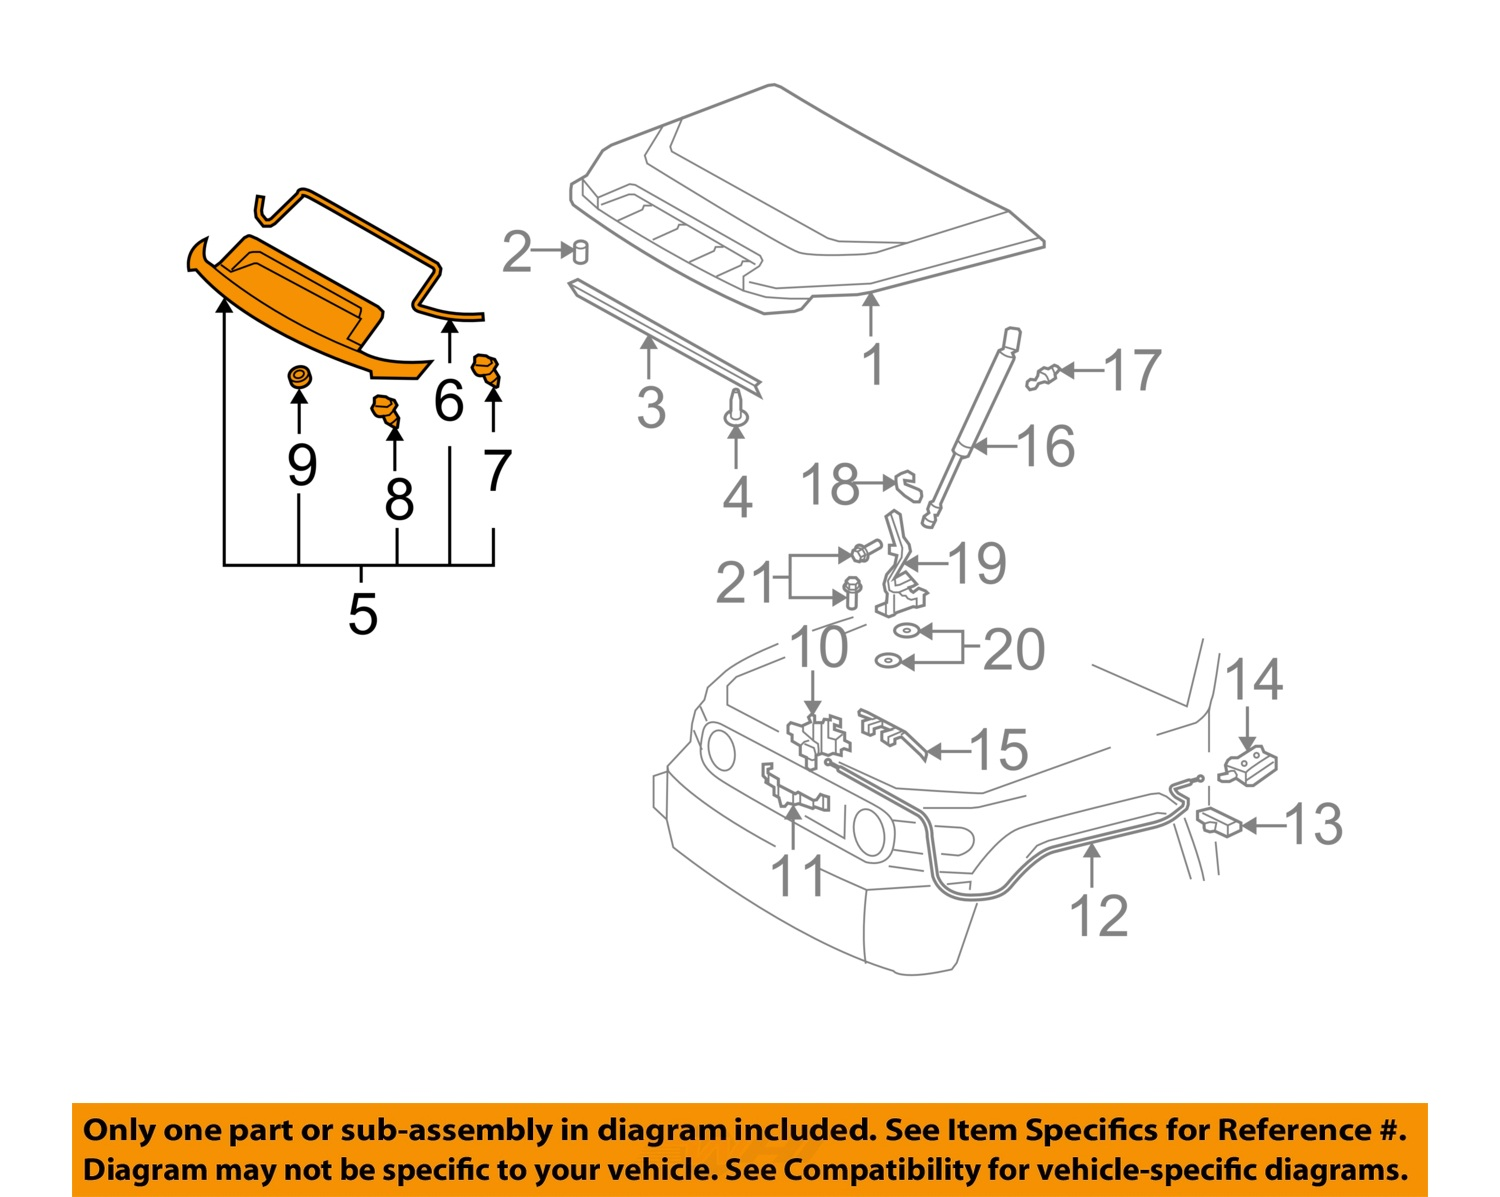 Case Engine Parts Diagram Electrical Wiring Auto Mobile 2007 Toyota Fj Cruiser Body Library Of U2022